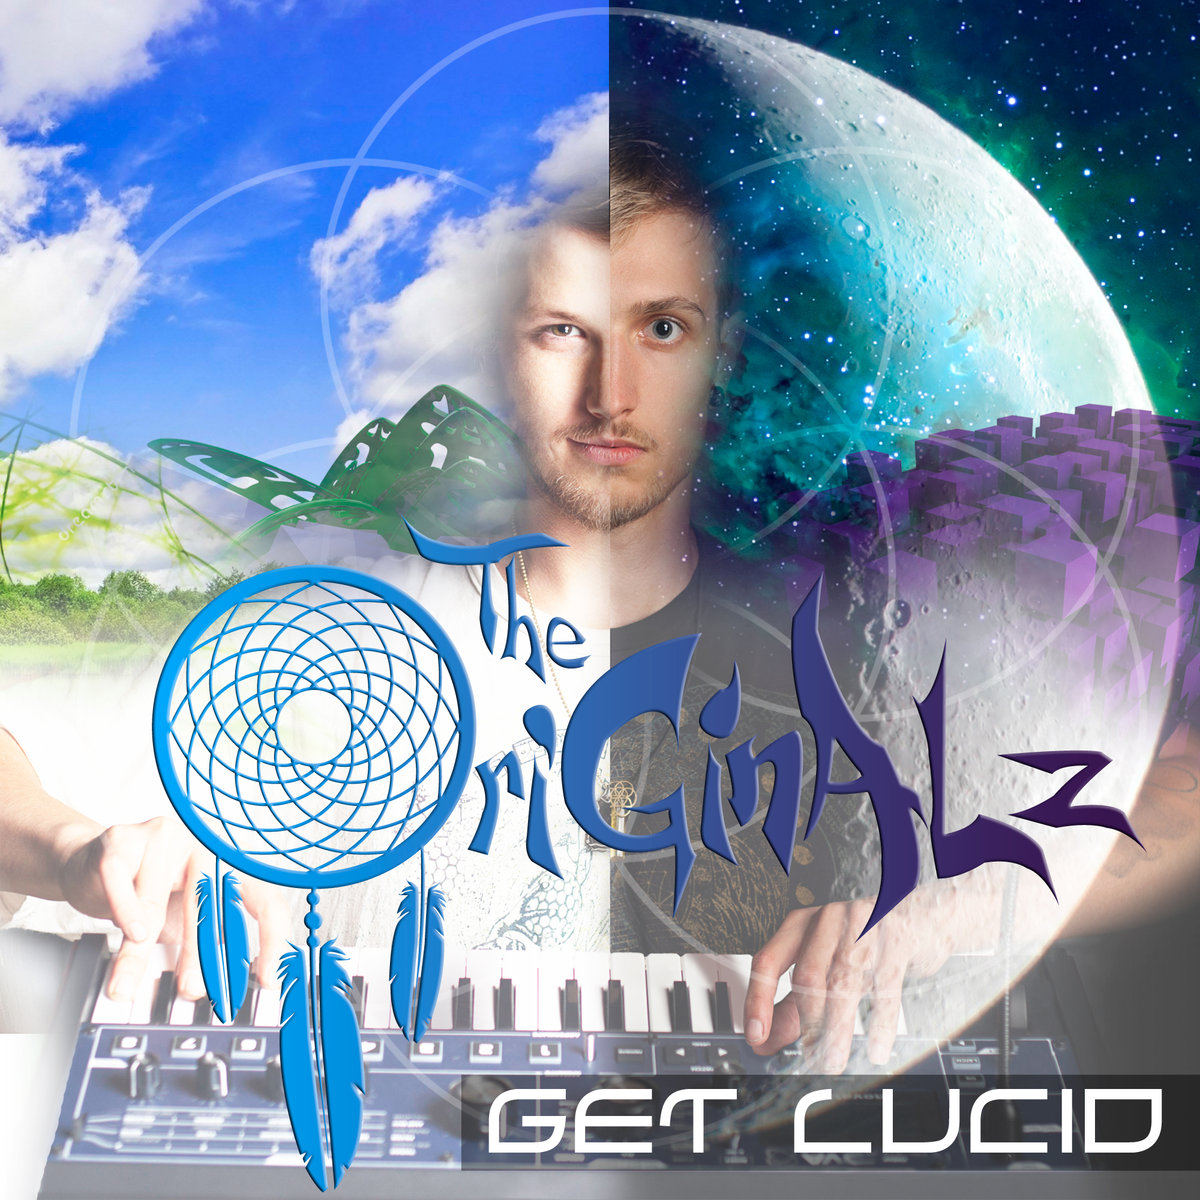 The OriGinALz - Get Lucid (LabRat Remix) @ 'Get Lucid' album (Austin)